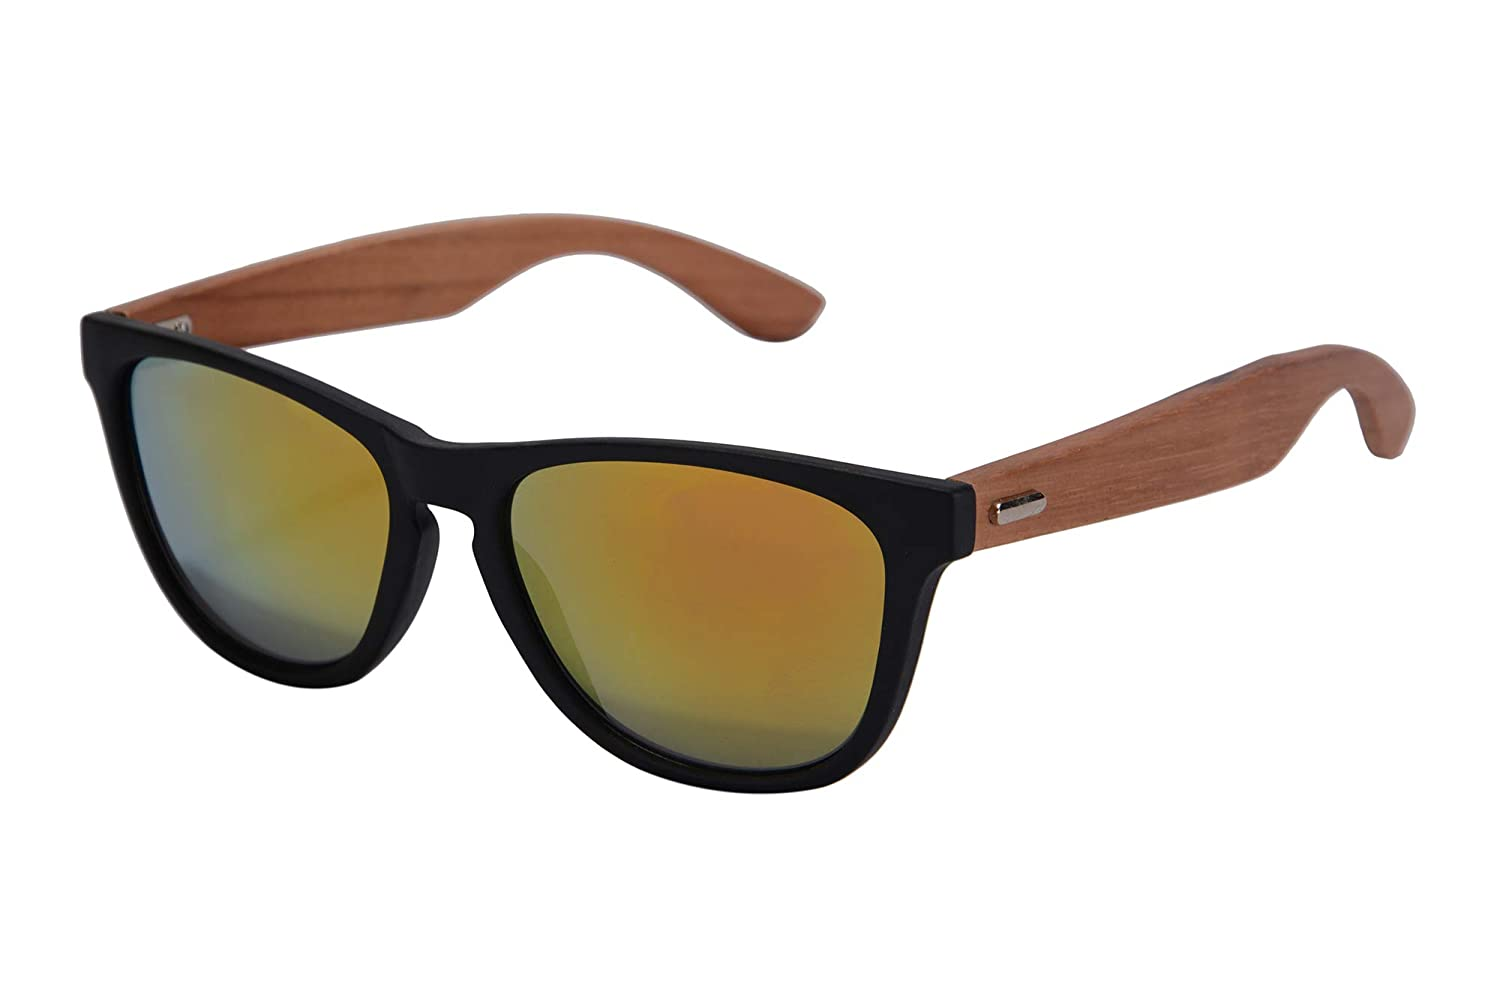 SHINU Real Bamboo Wooden Arms Sunglasses for Men or Women